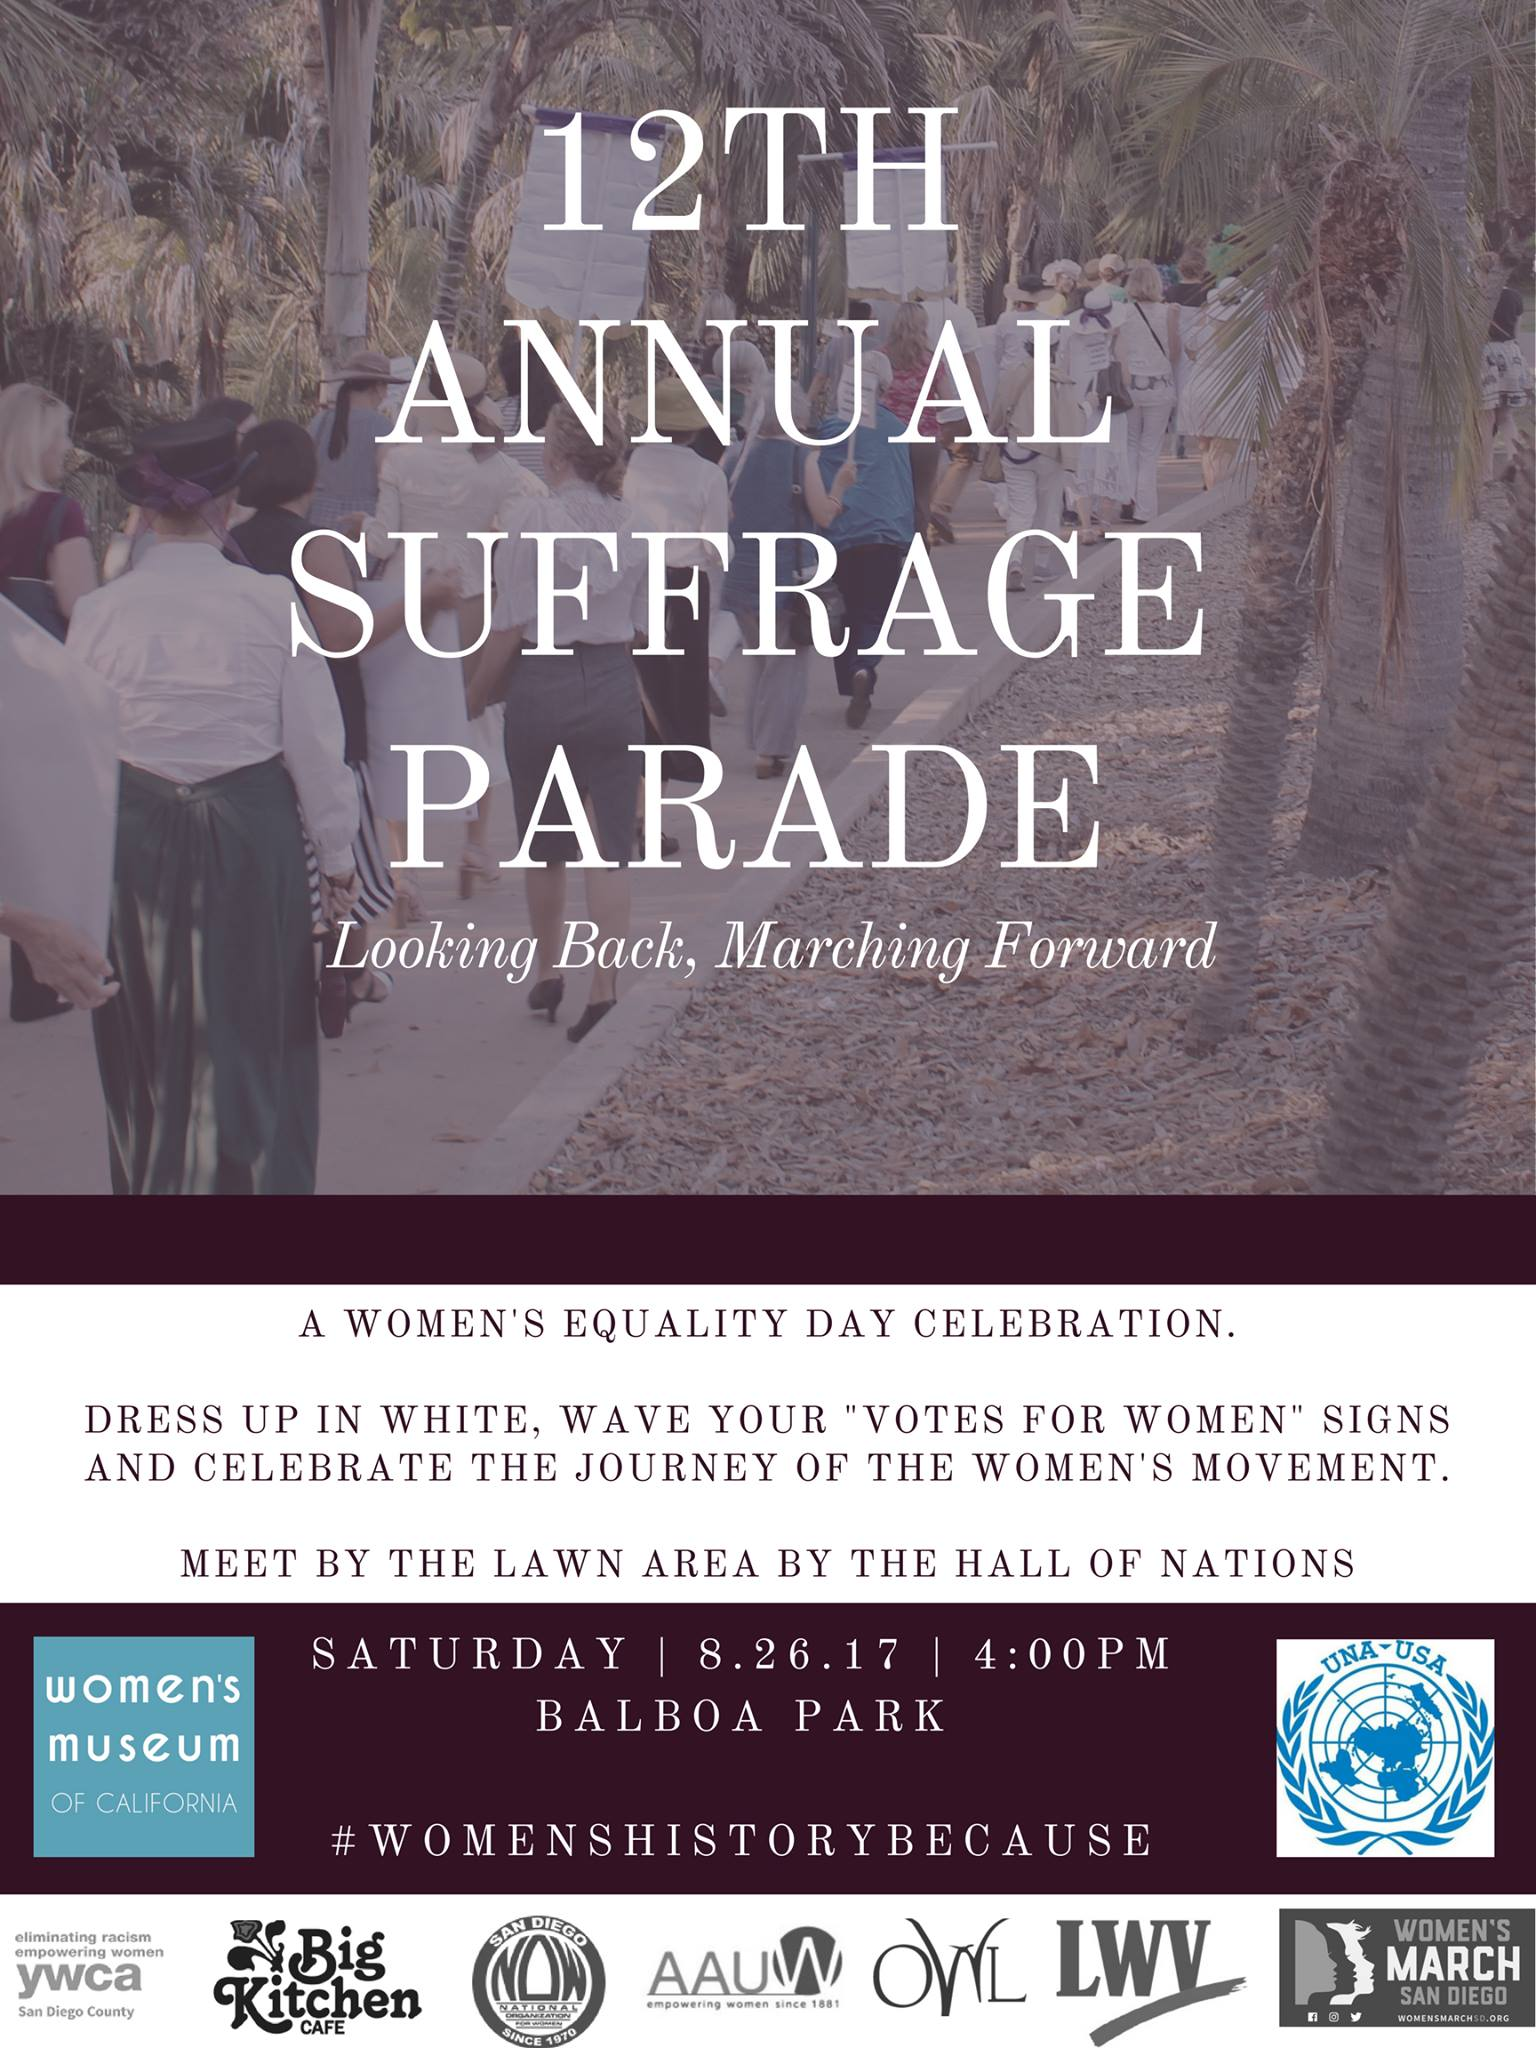 suffrage_parade_flier.jpg